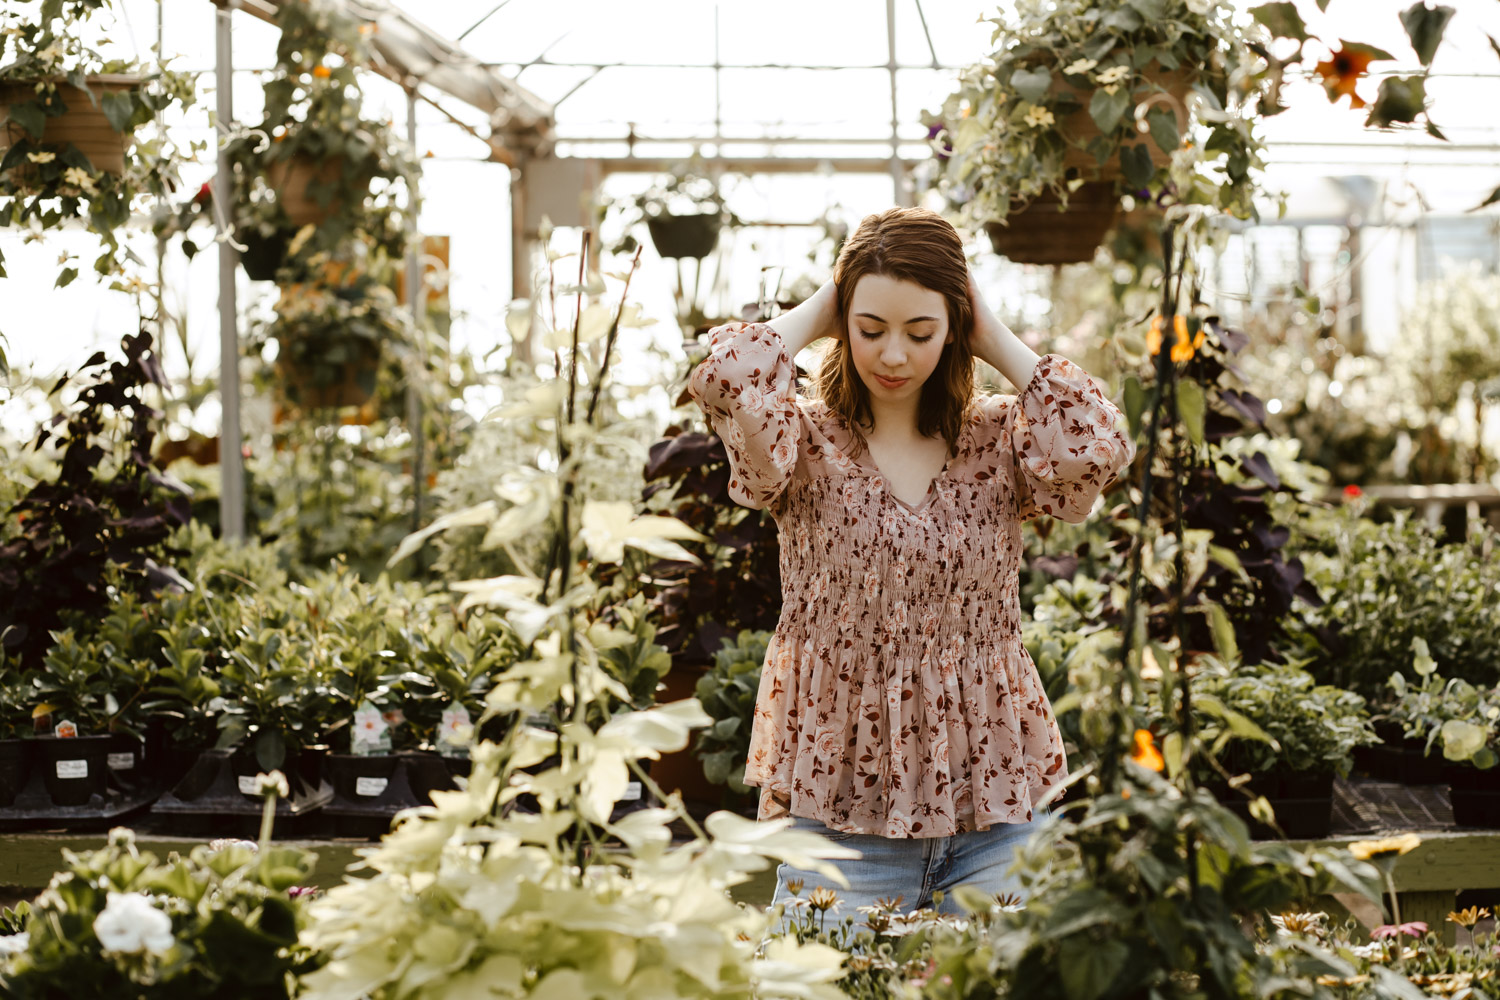 Boise Senior Photographer with Ashley at Edwards Greenhouse from Timberline High School.